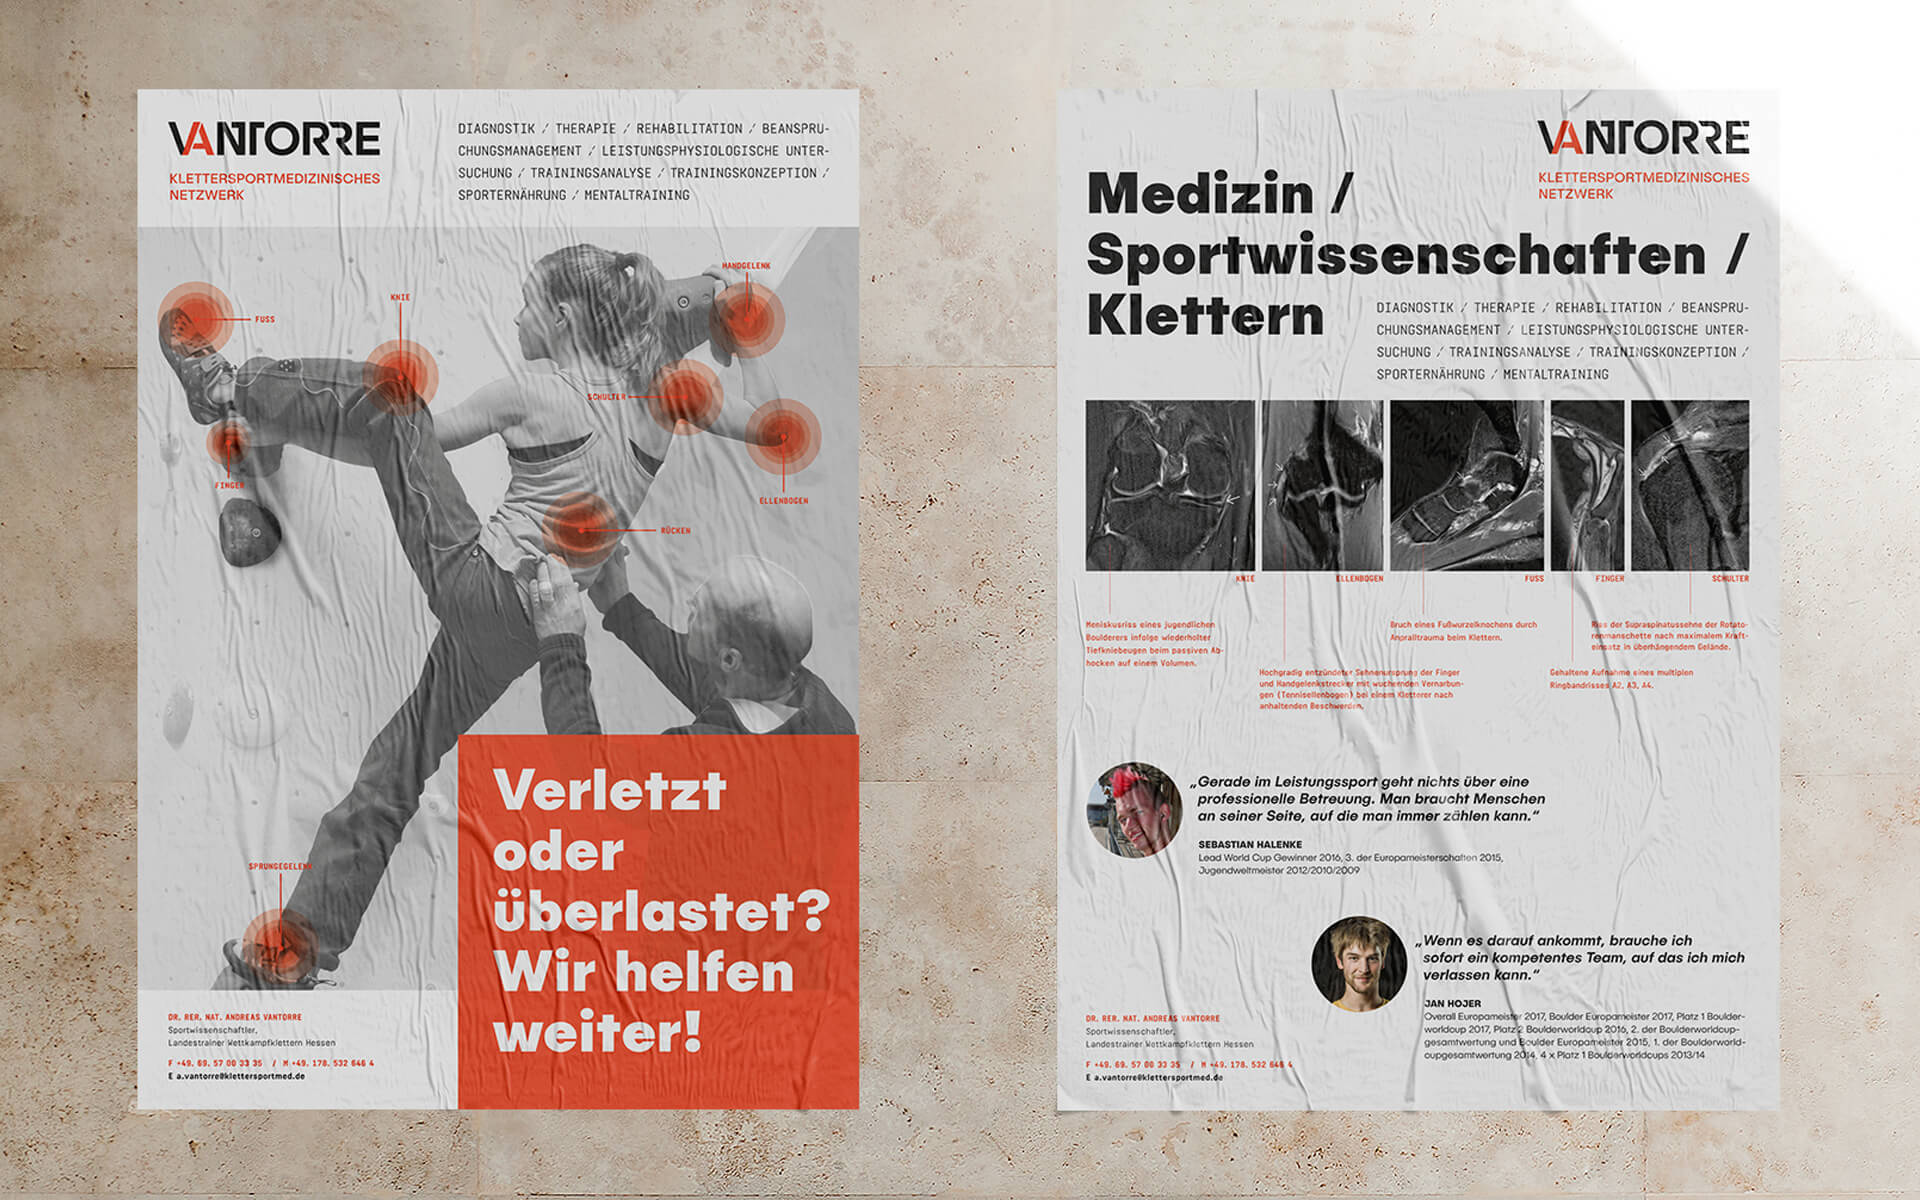 Andreas Vantorre, Corporate Design, Plakatgestaltung